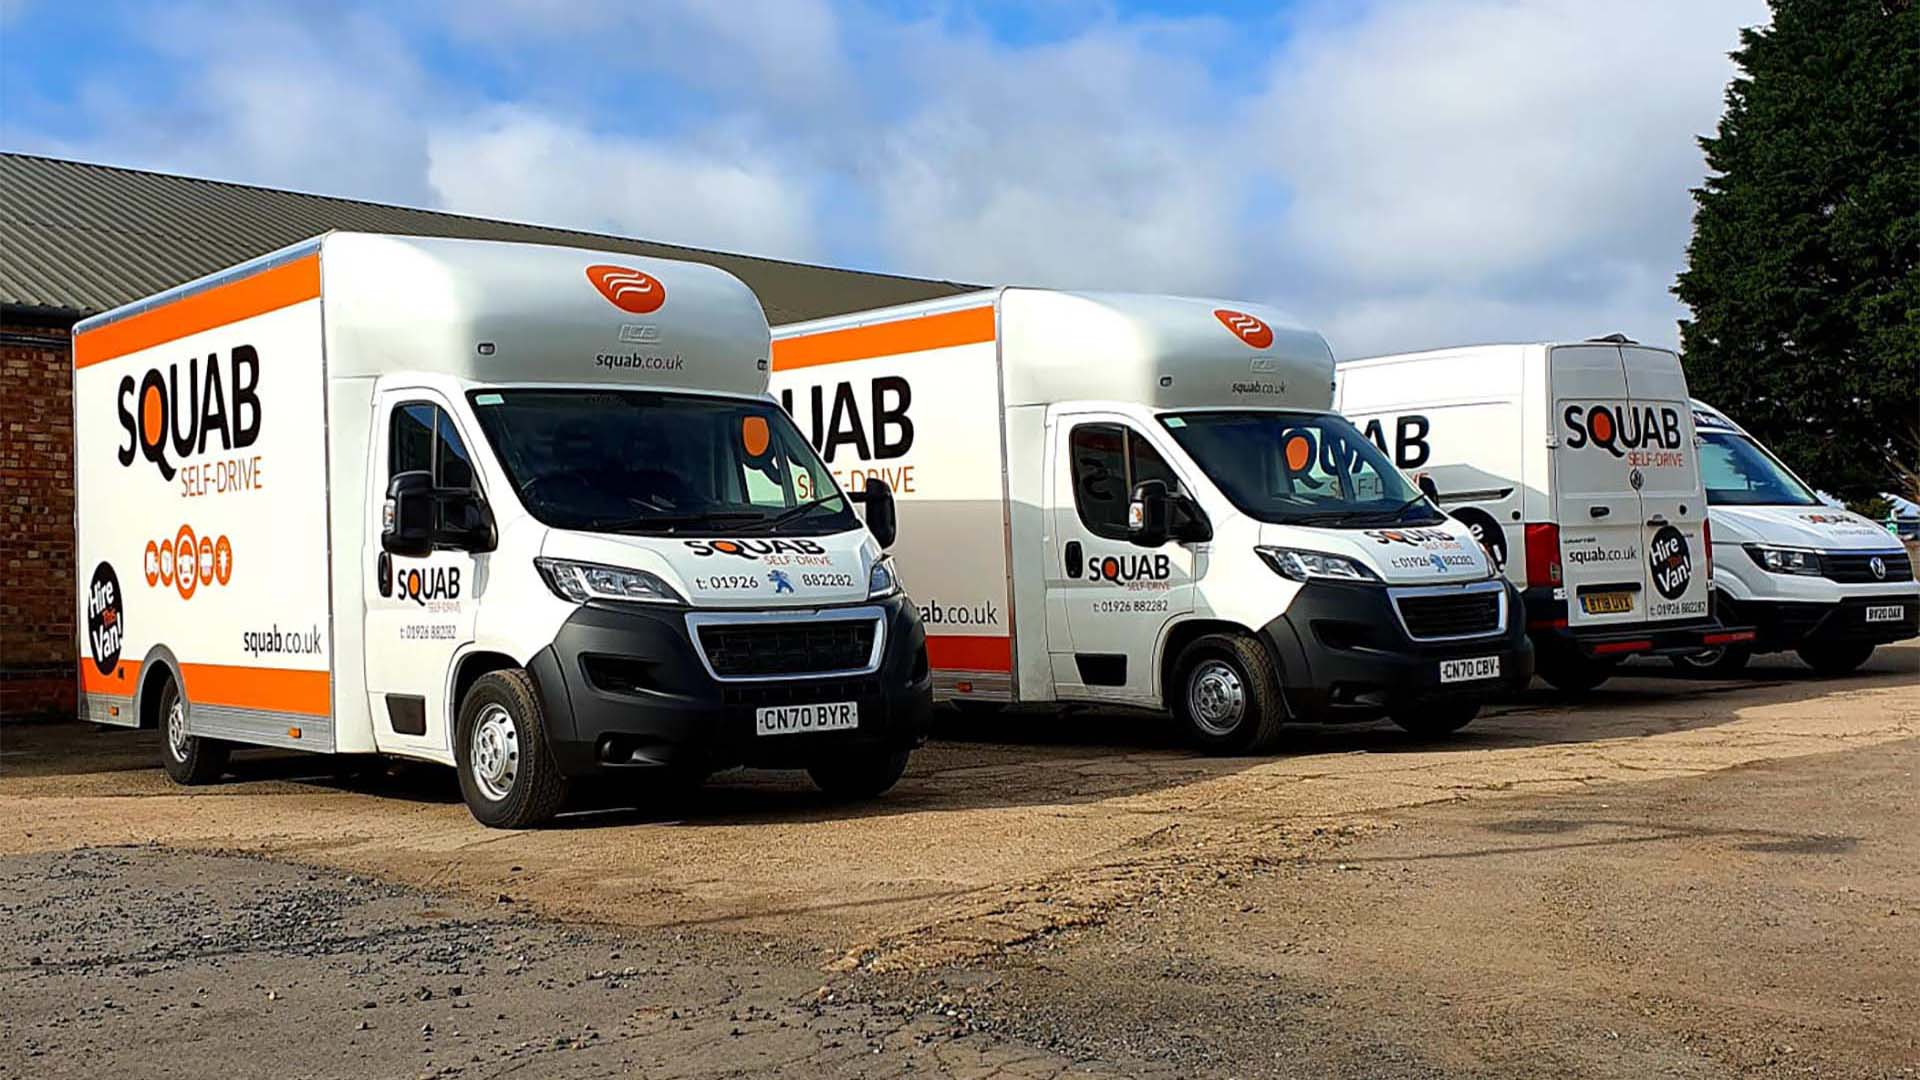 Van Hire - What To Do If You're In An Accident